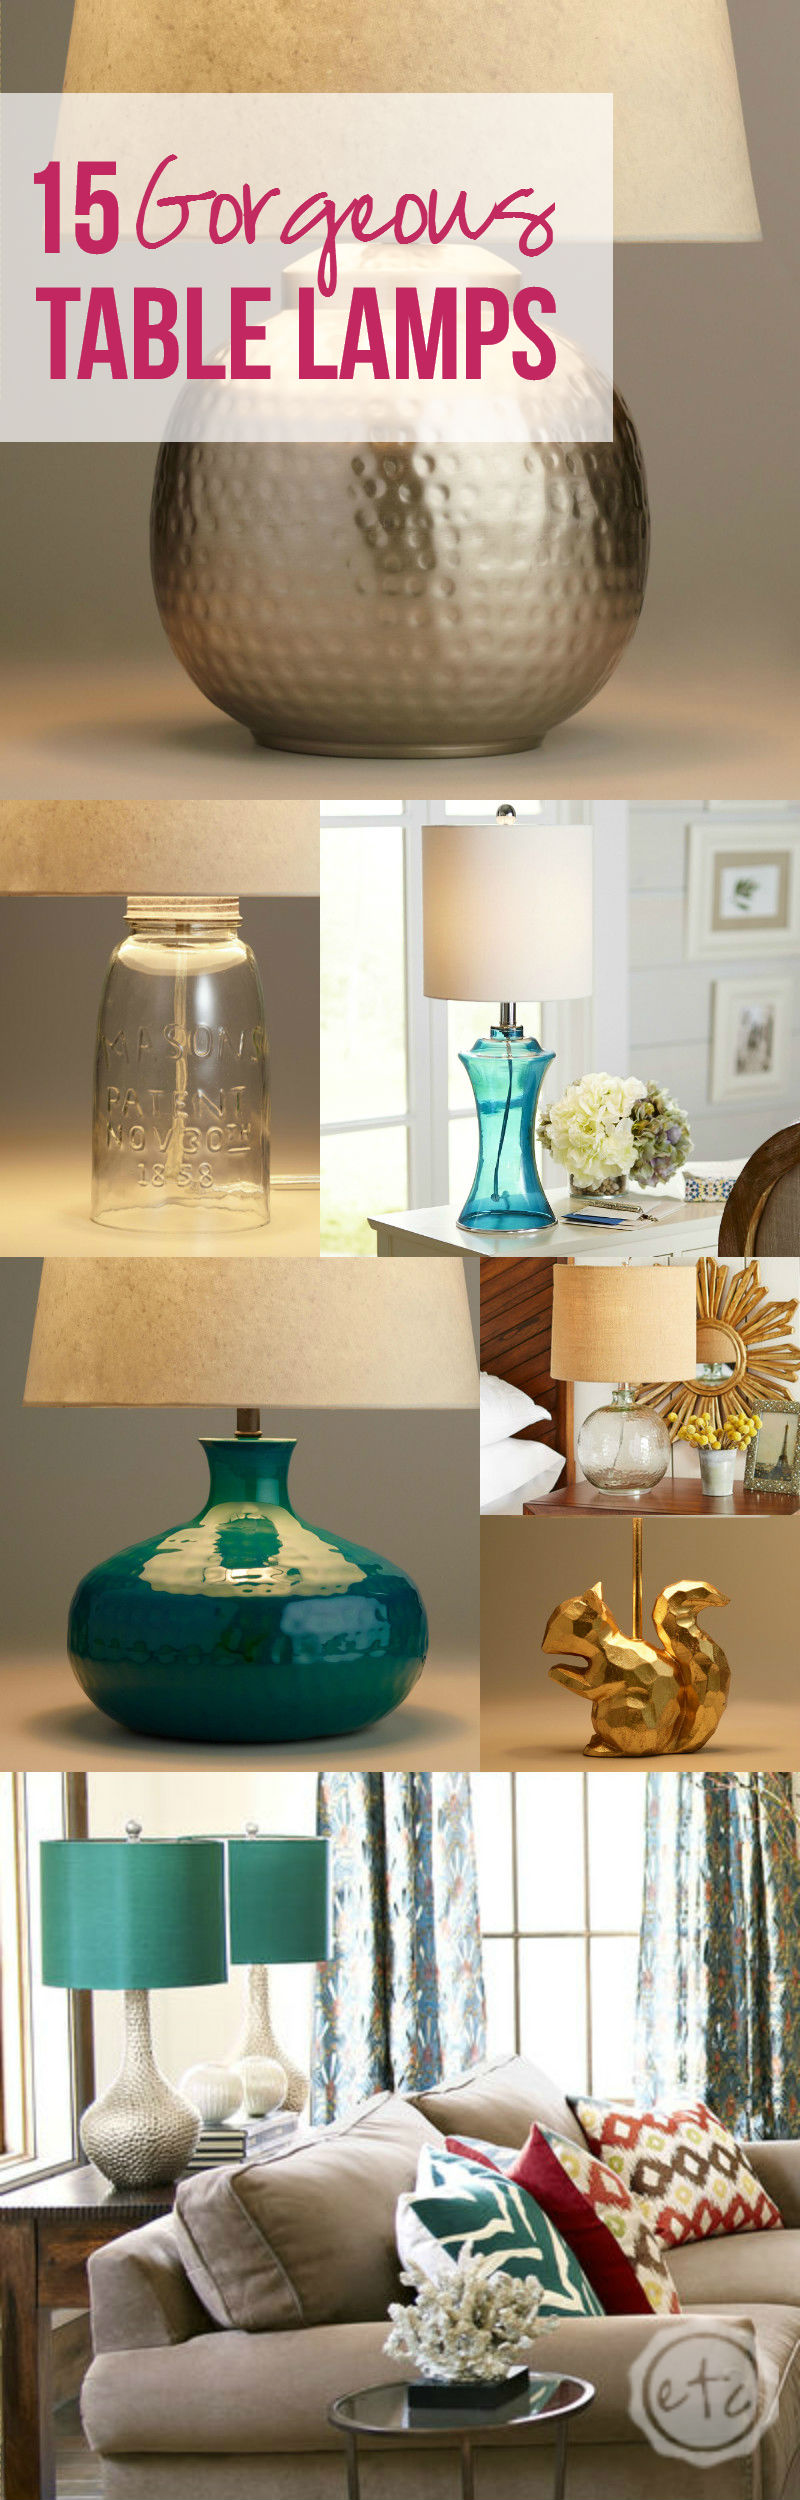 How amazing are these gorgeous table lamps?! I love the cute mercury glass one! Click through to read more! @HappilyEverAEtc